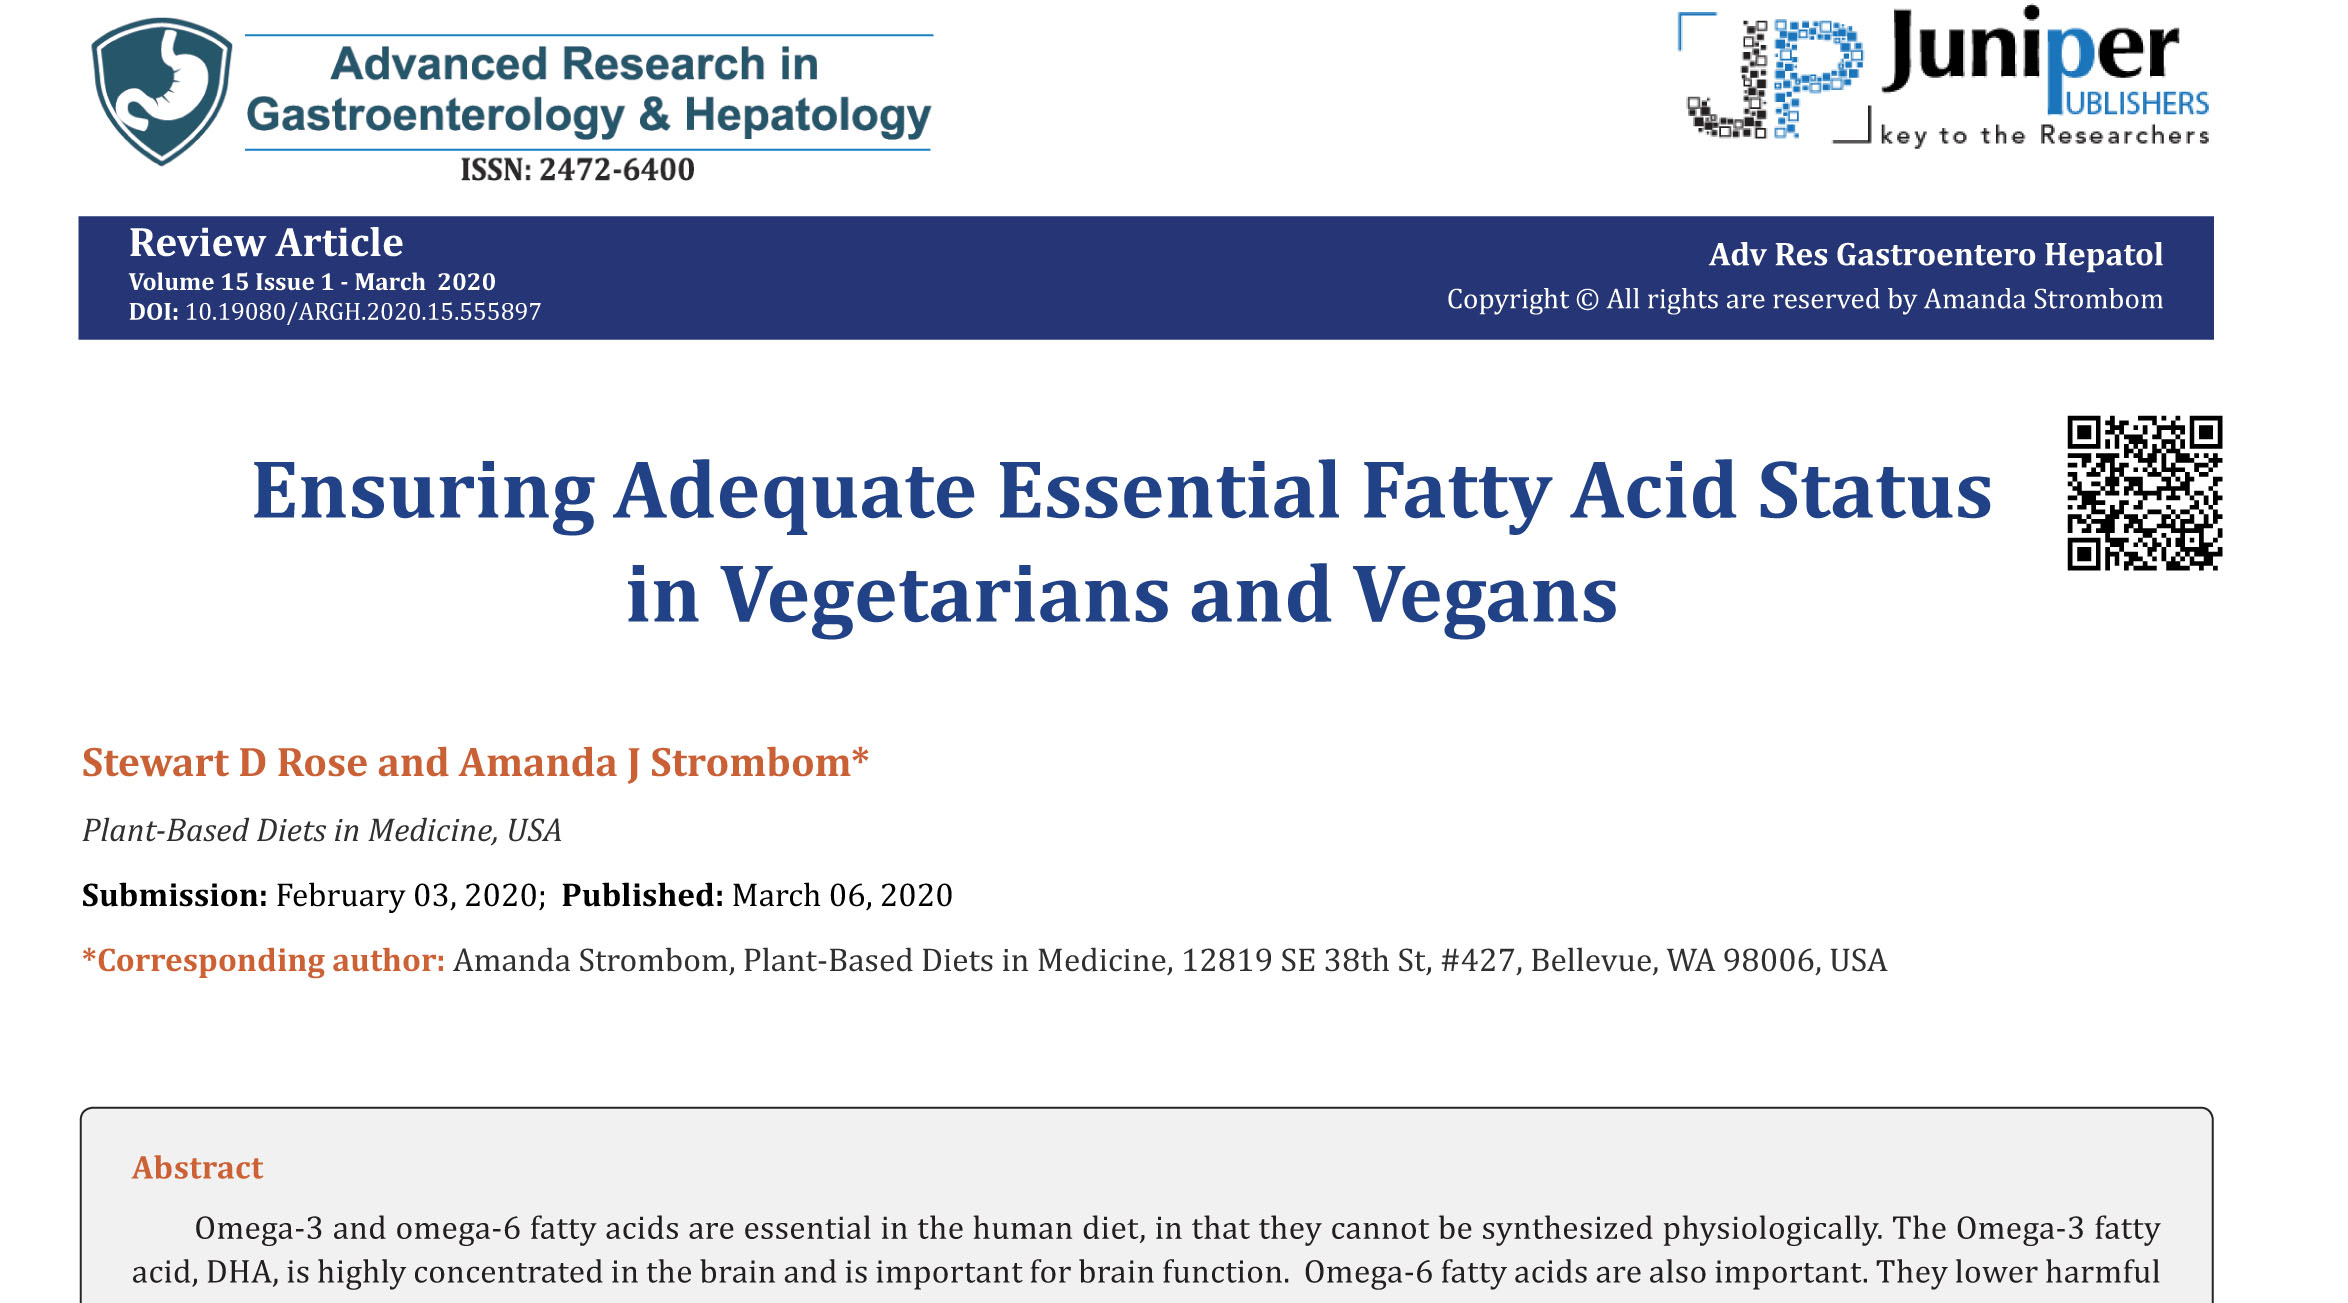 Ensuring Adequate Essential Fatty Acid Status in Vegetarians and